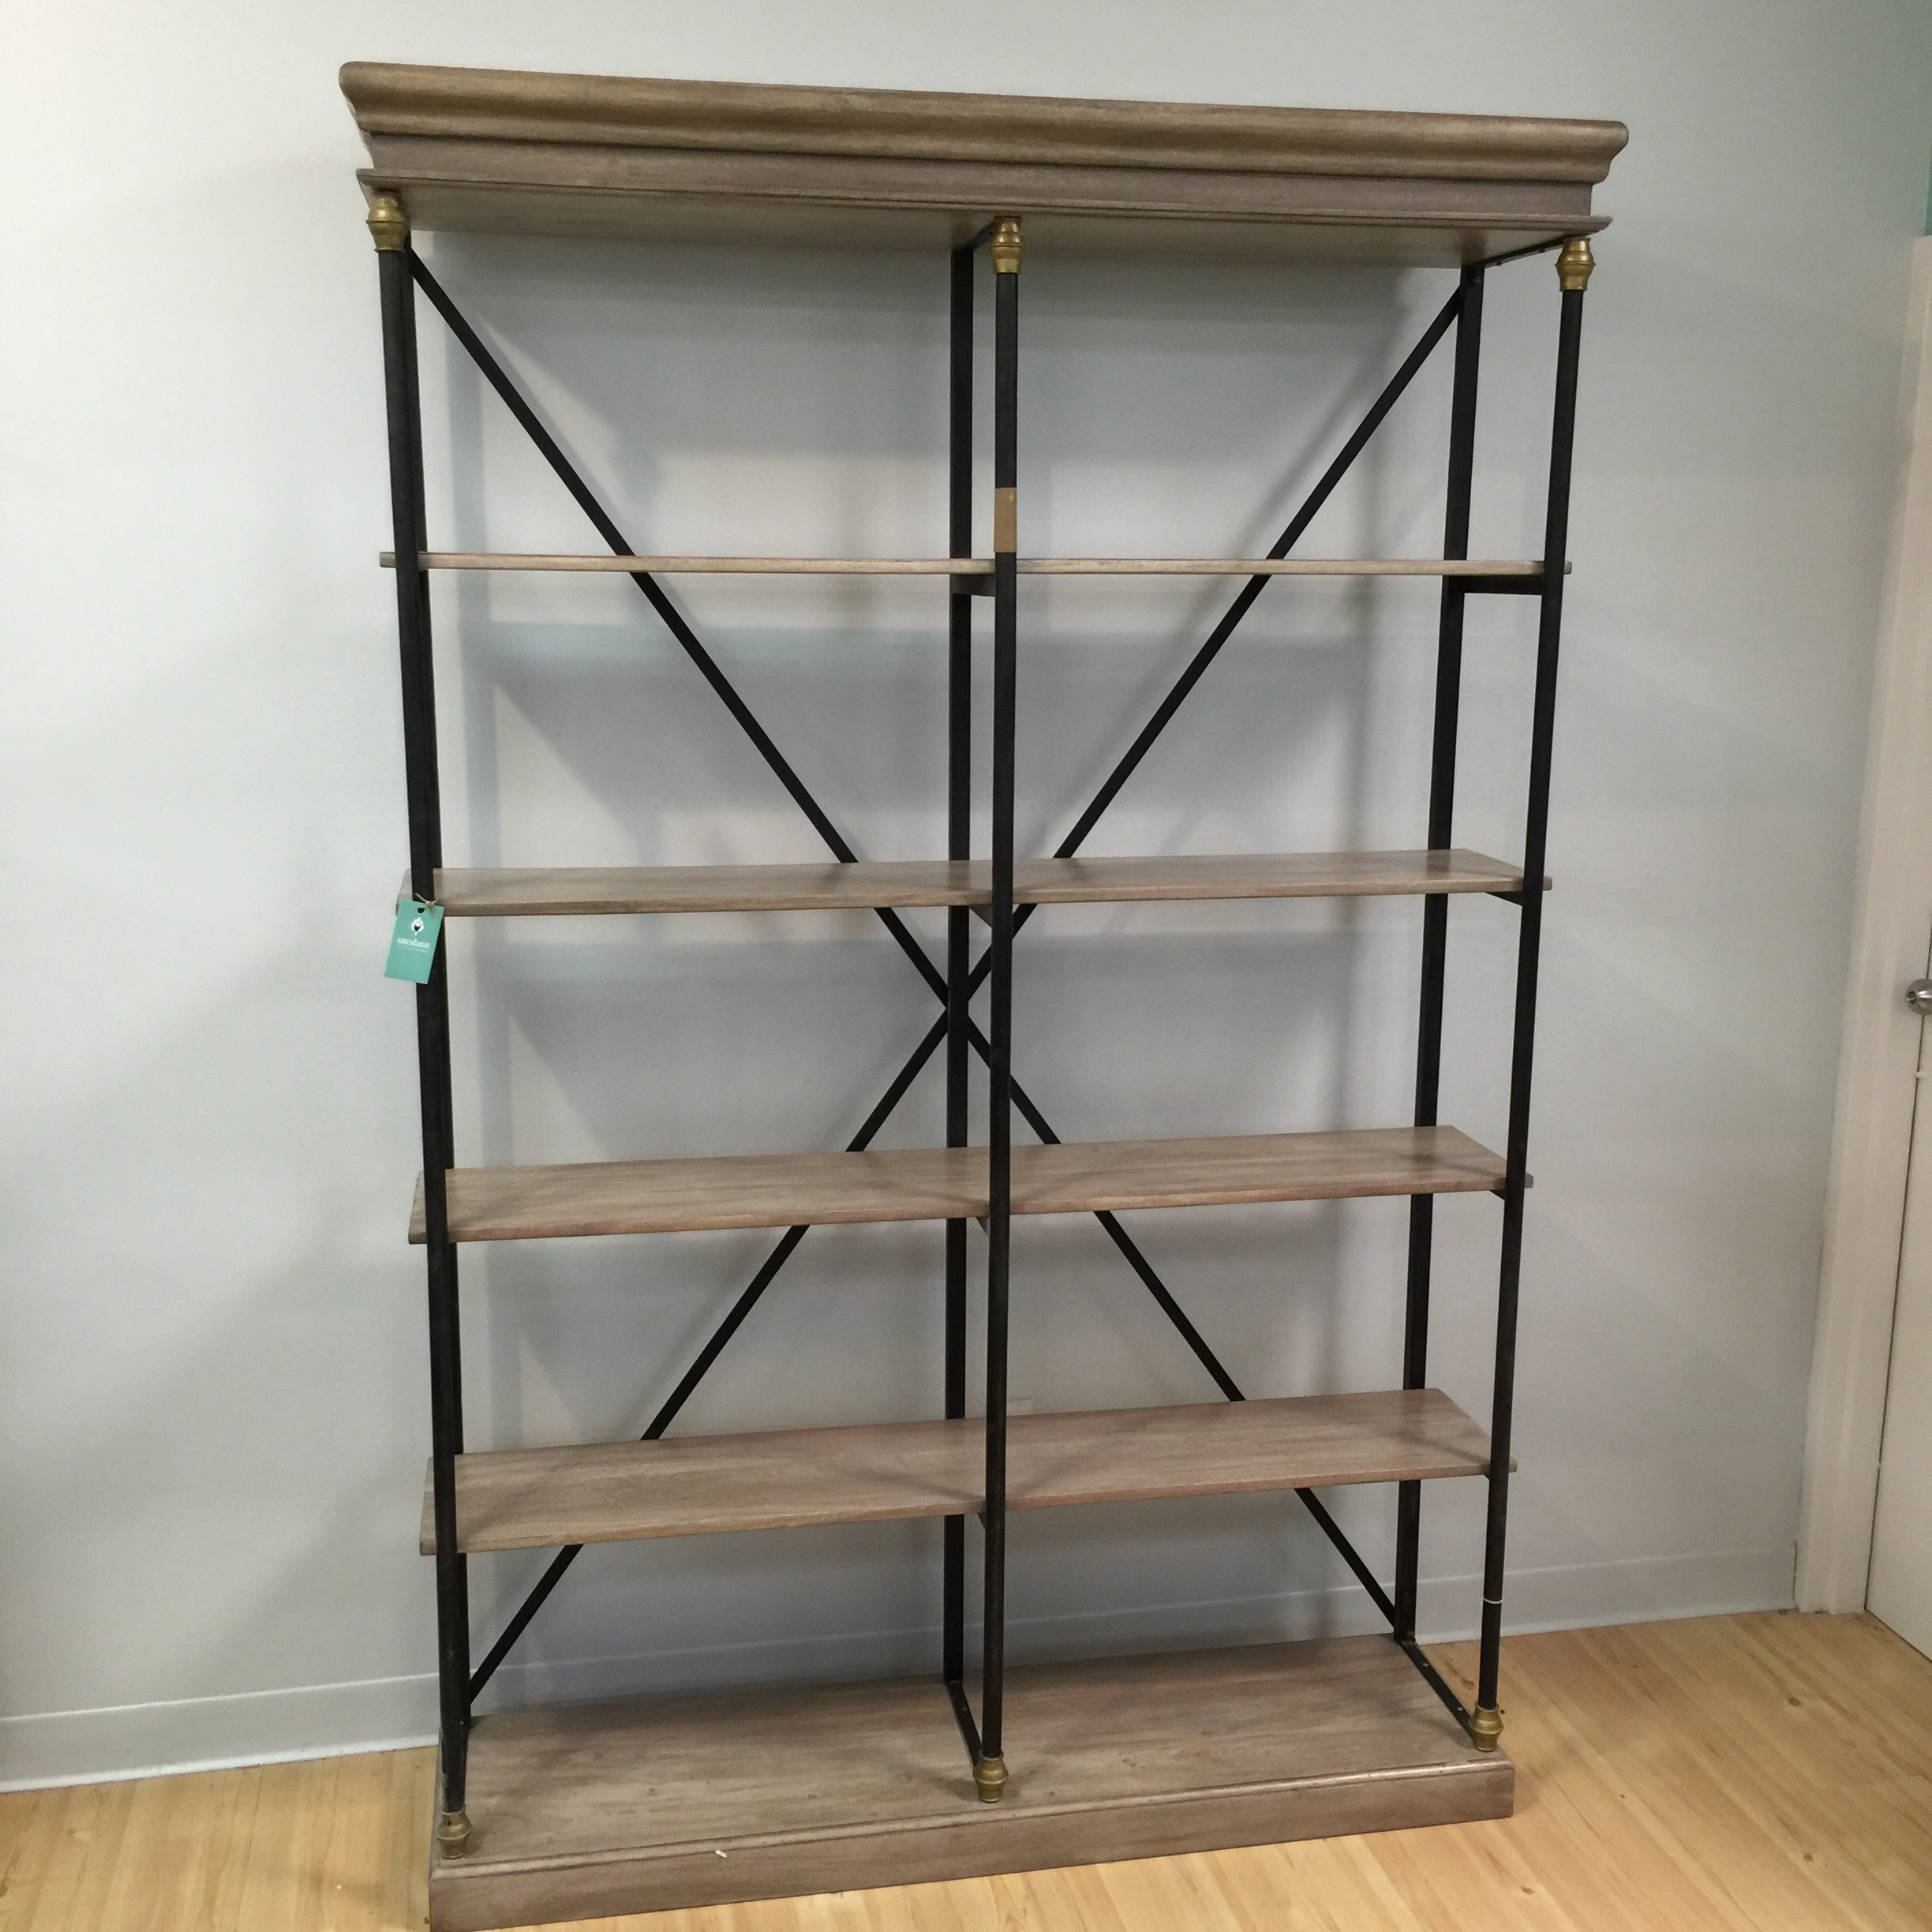 2018 Open Back Bookcases Within Backyards Images About Decor Bookshelves Bookcases Built Ins (View 1 of 15)